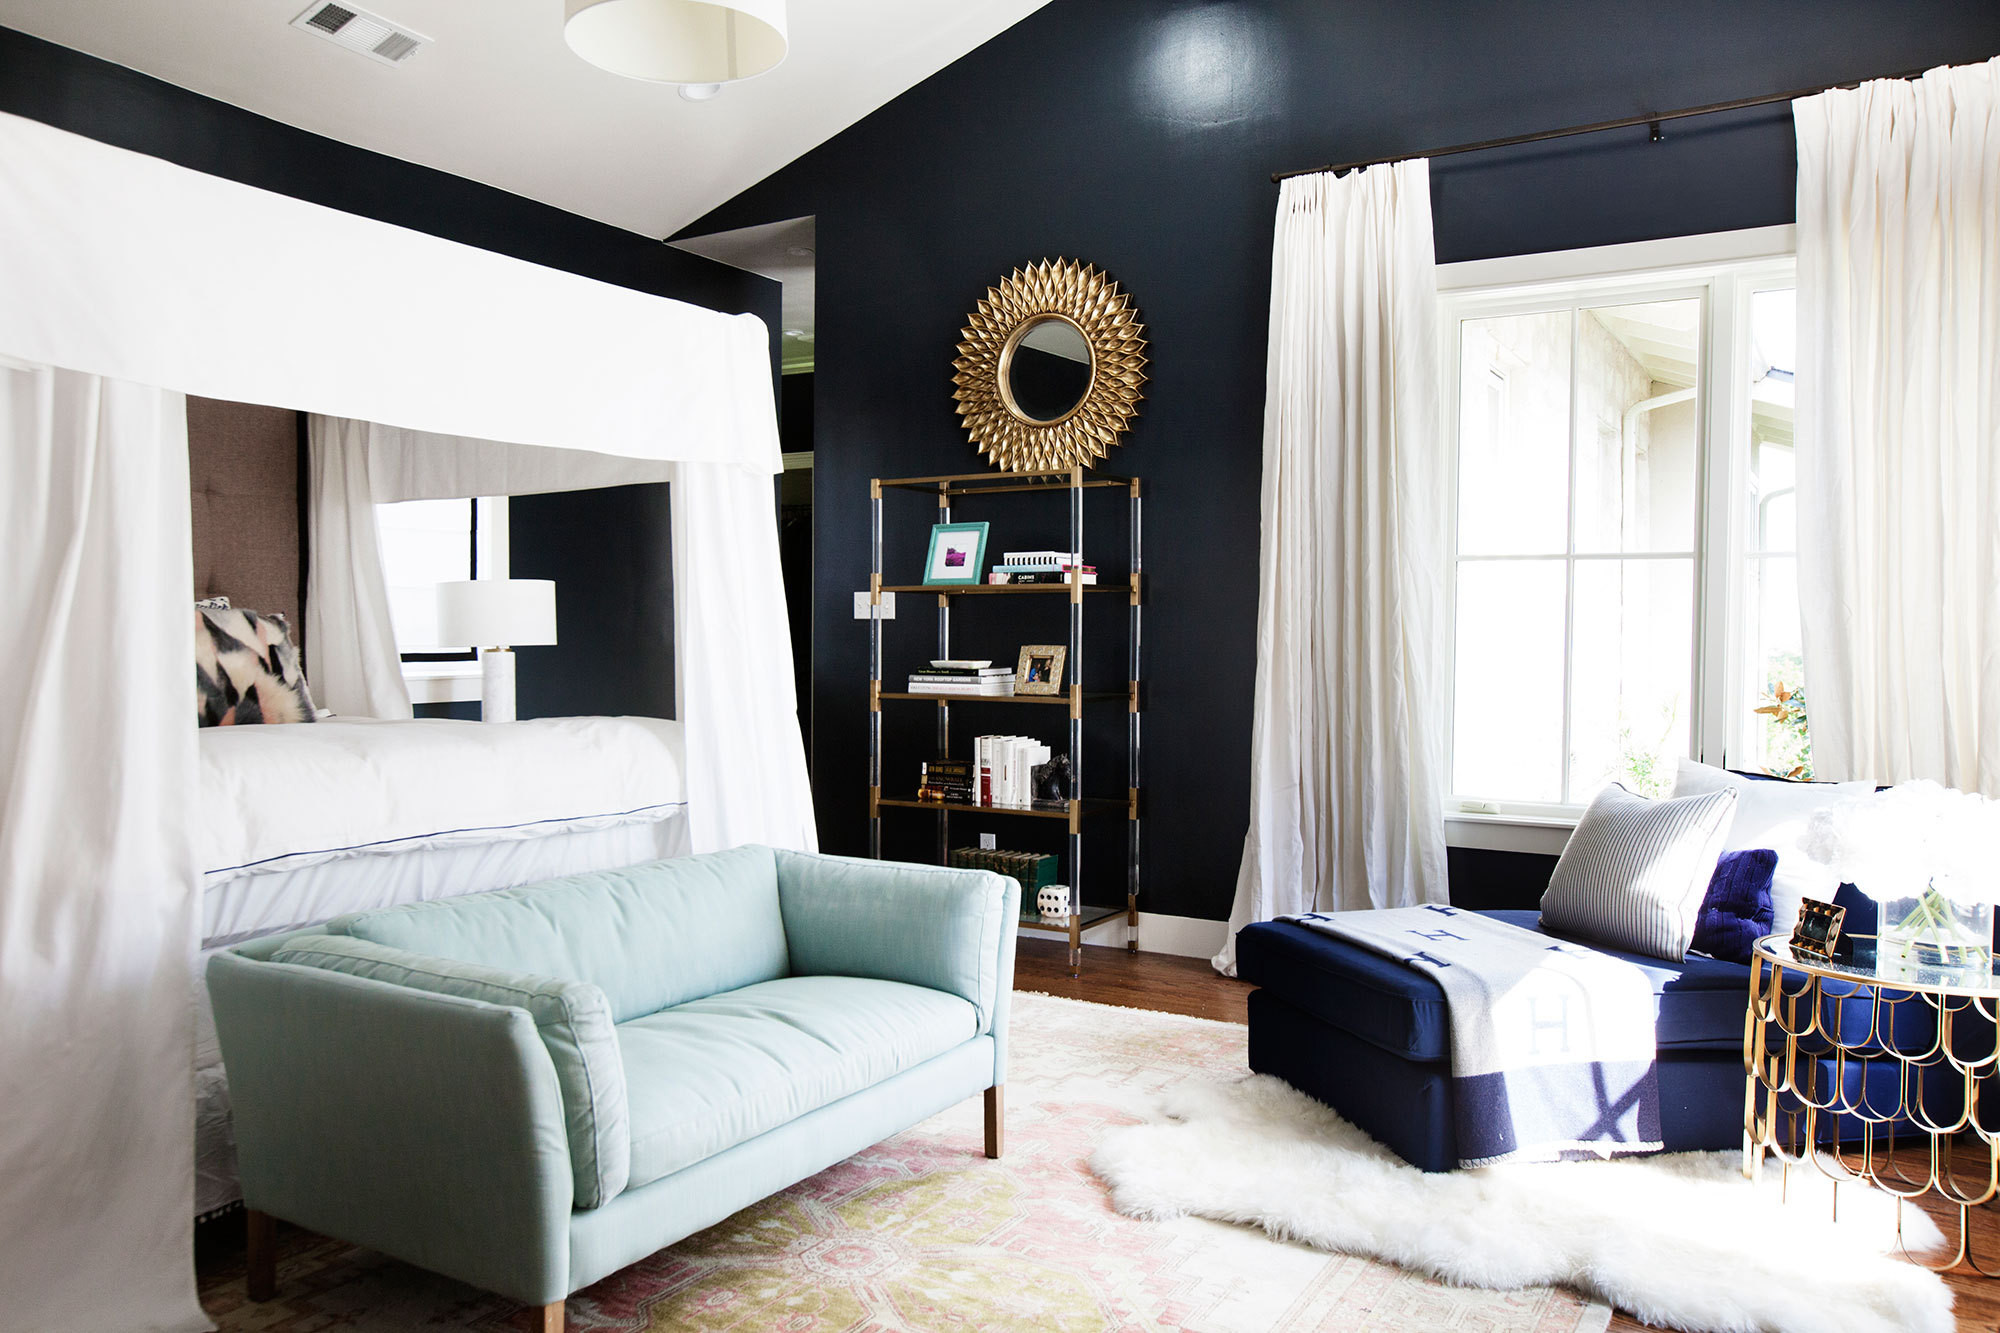 The master bedroom feels like a cozy retreat thanks to a canopy bed and Benjamin Moore's Gravel Grey paint.